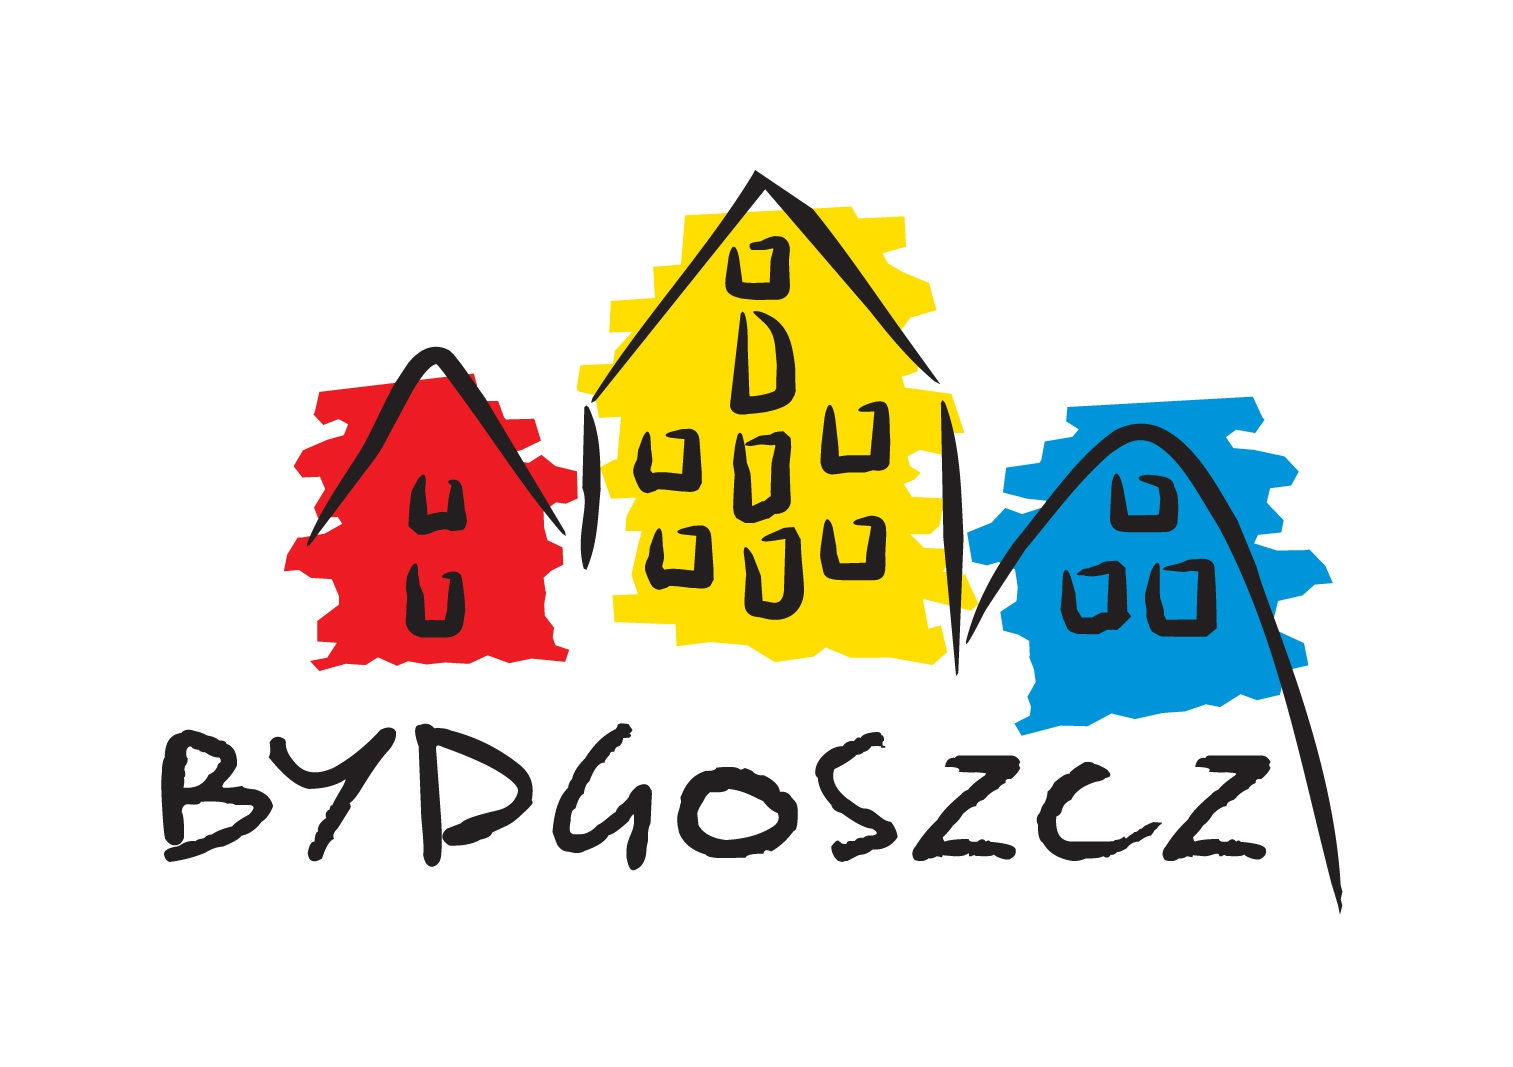 Go to: City of Bydgoszsc website